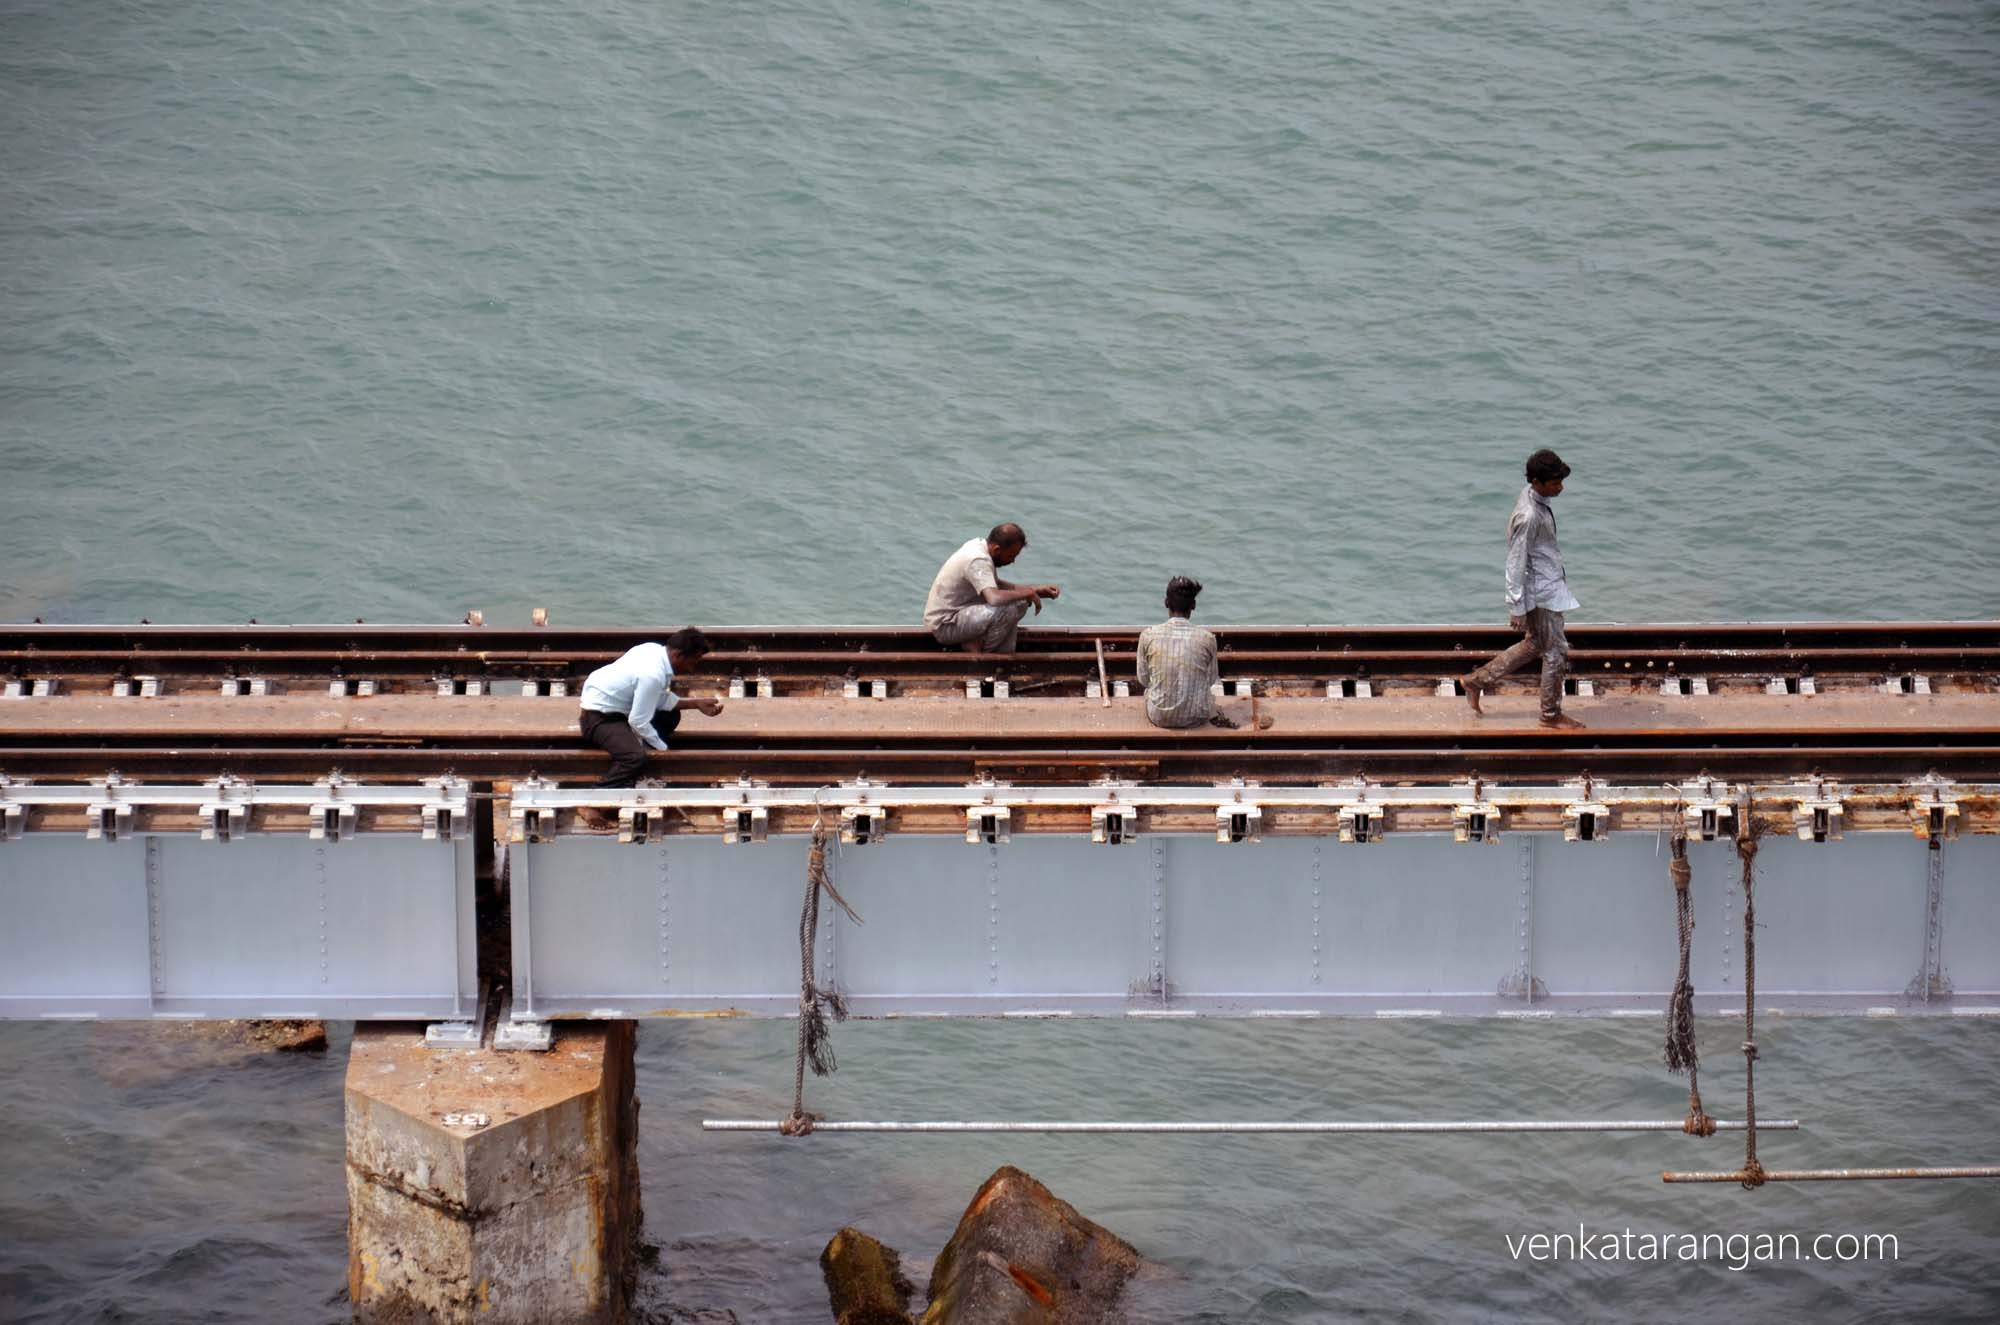 The Railway men repairing the track - Pambam rail bridge